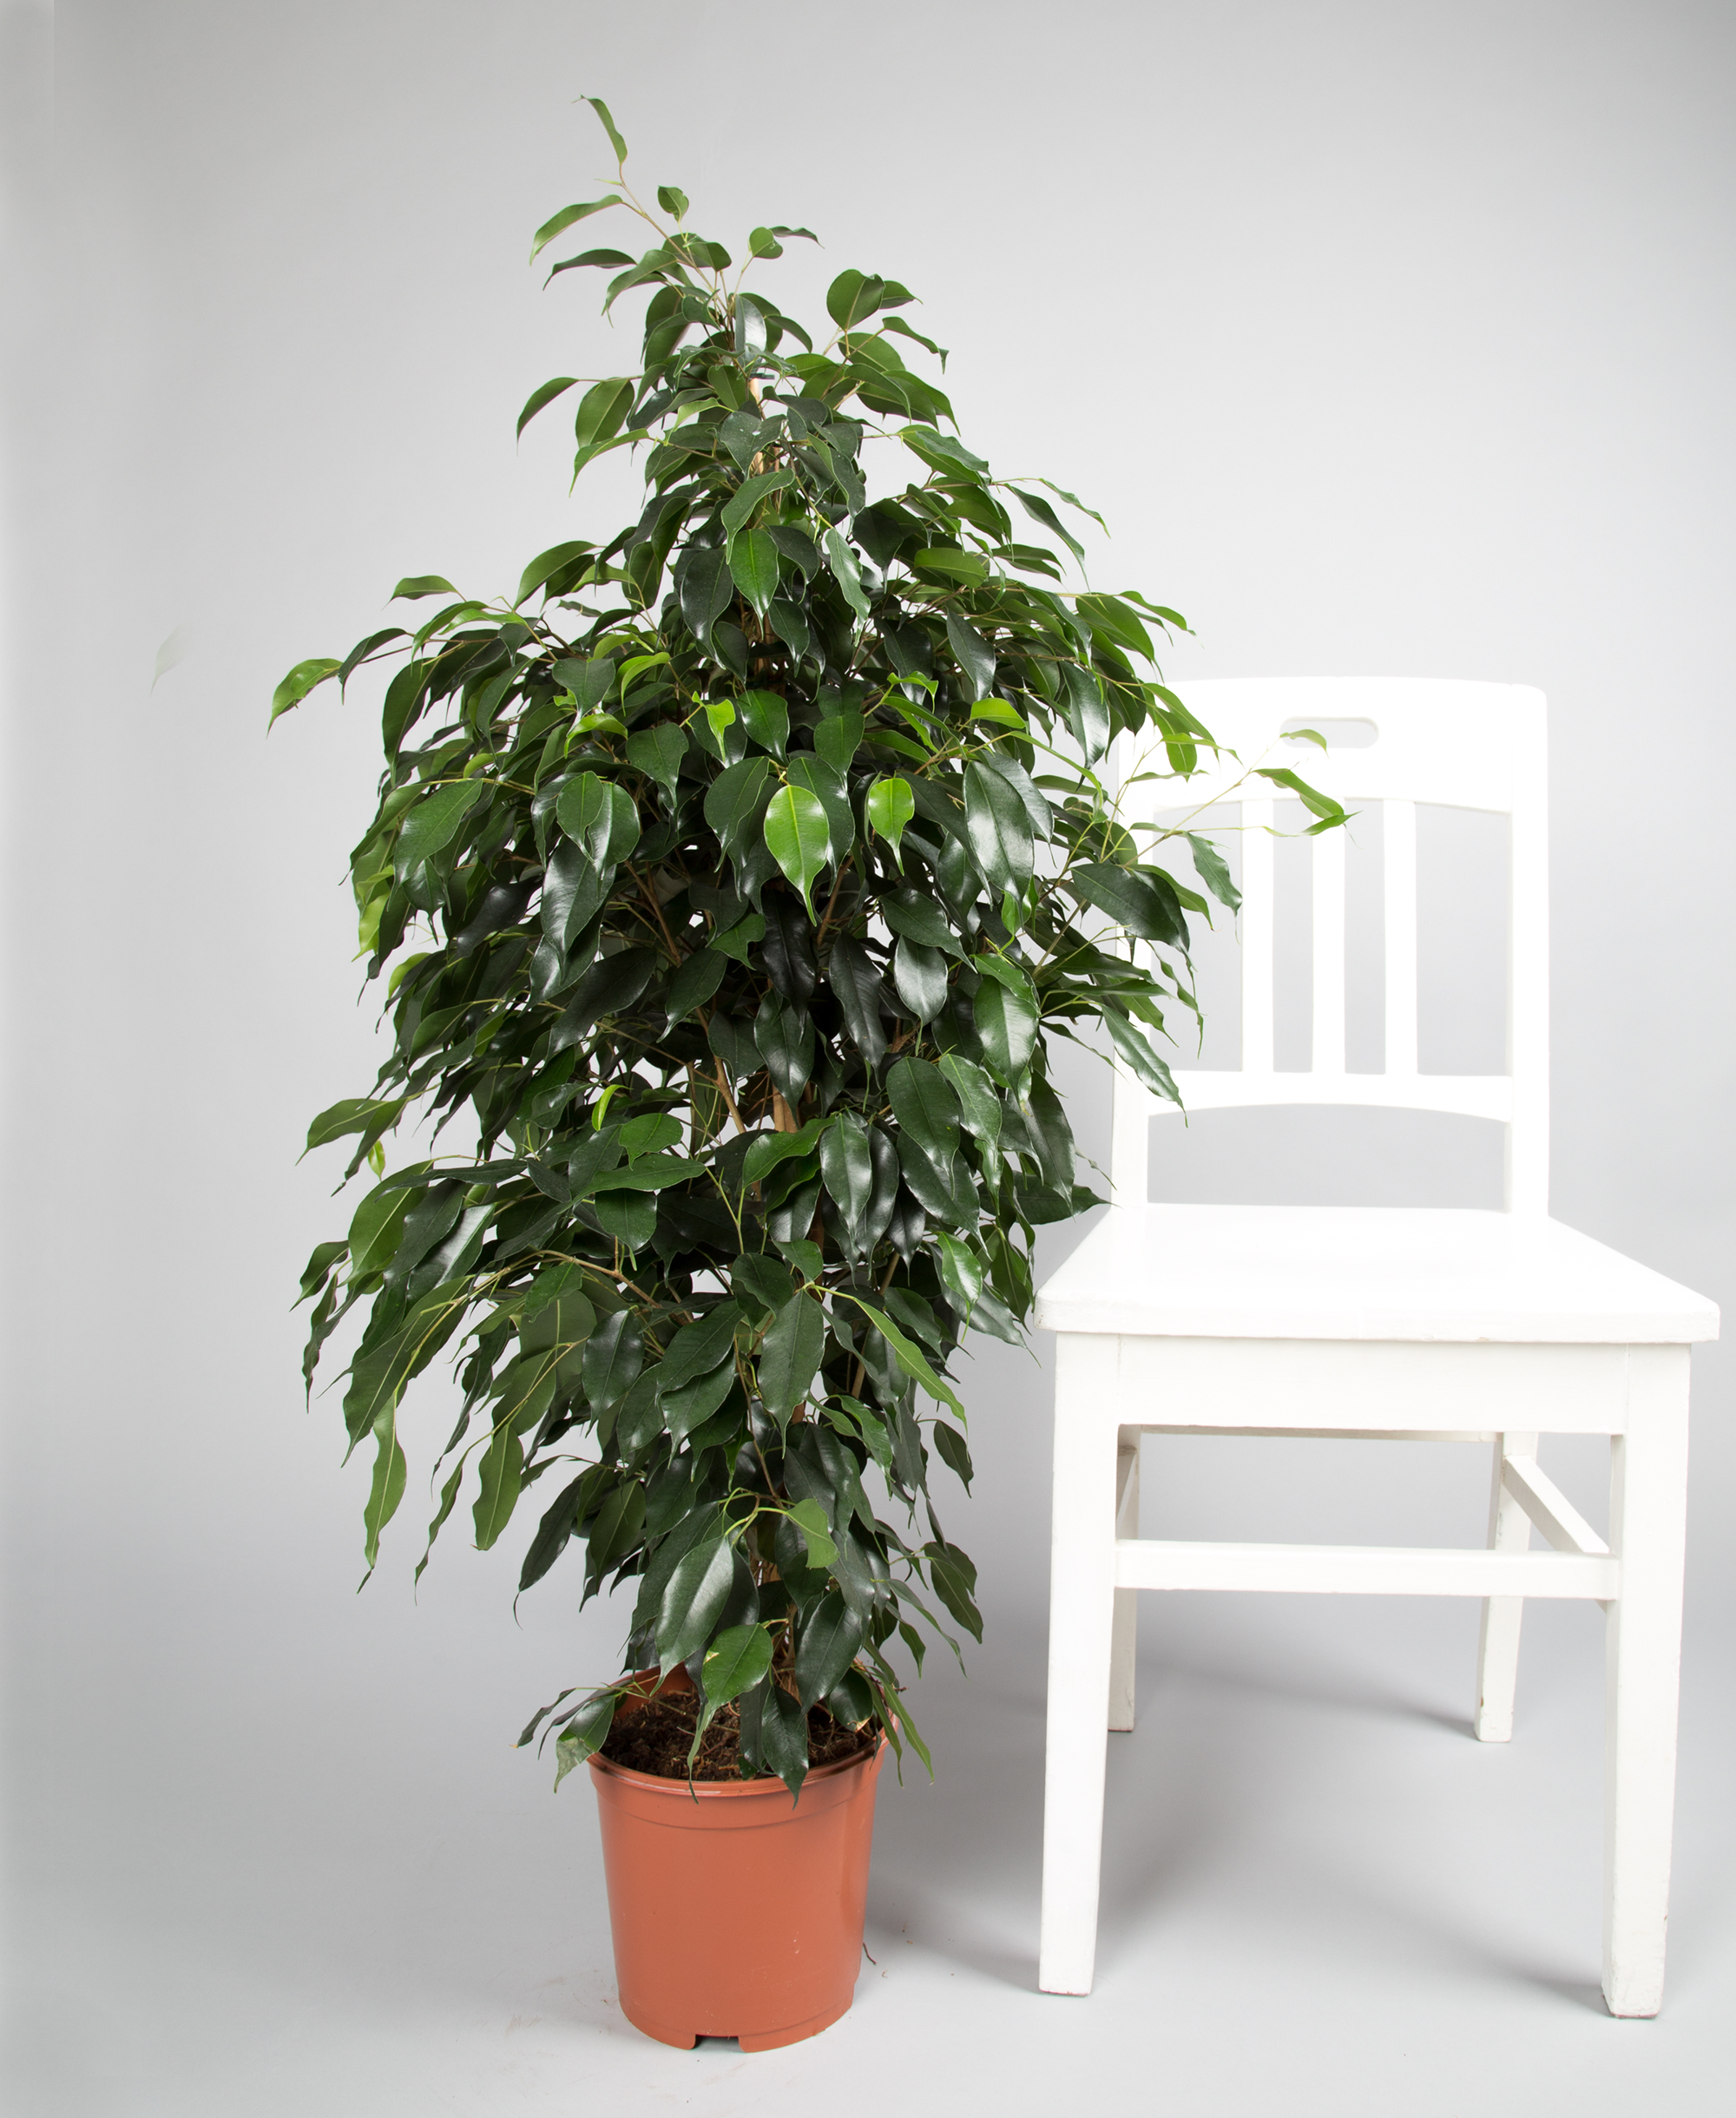 ficus danielle ficus zimmerpflanzen 2bloom. Black Bedroom Furniture Sets. Home Design Ideas